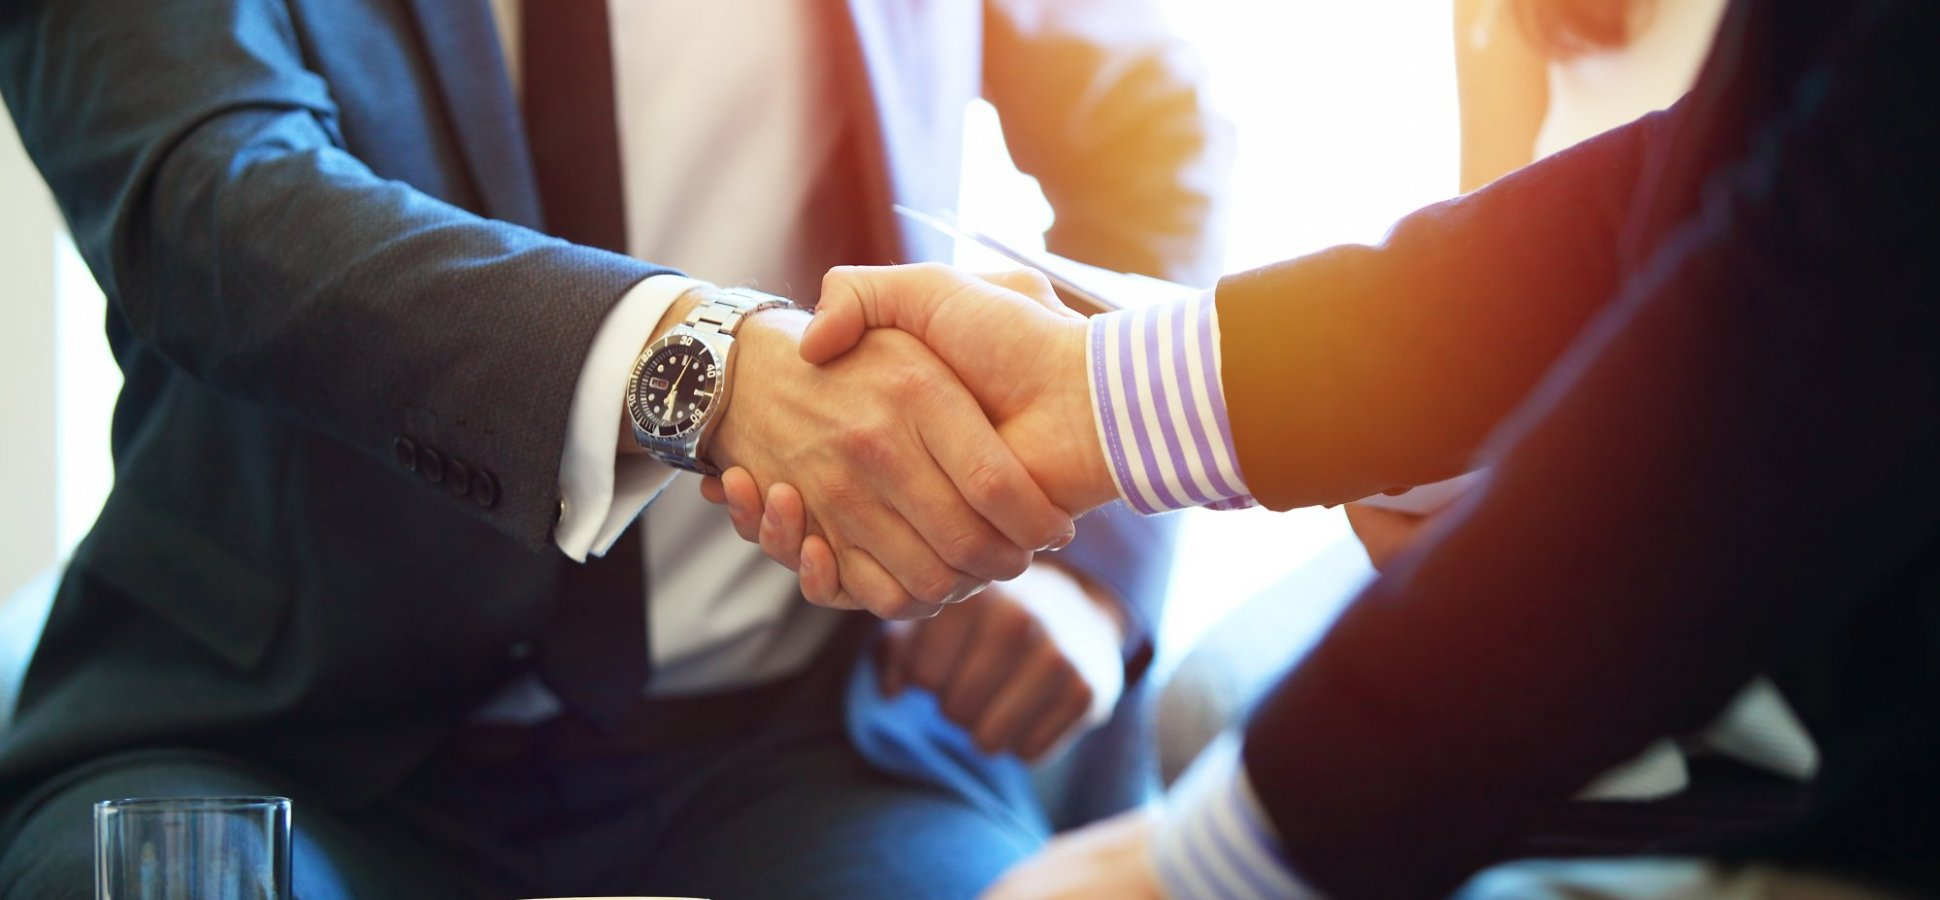 3 Laws You Should Live By When Negotiating Prices With Vendors